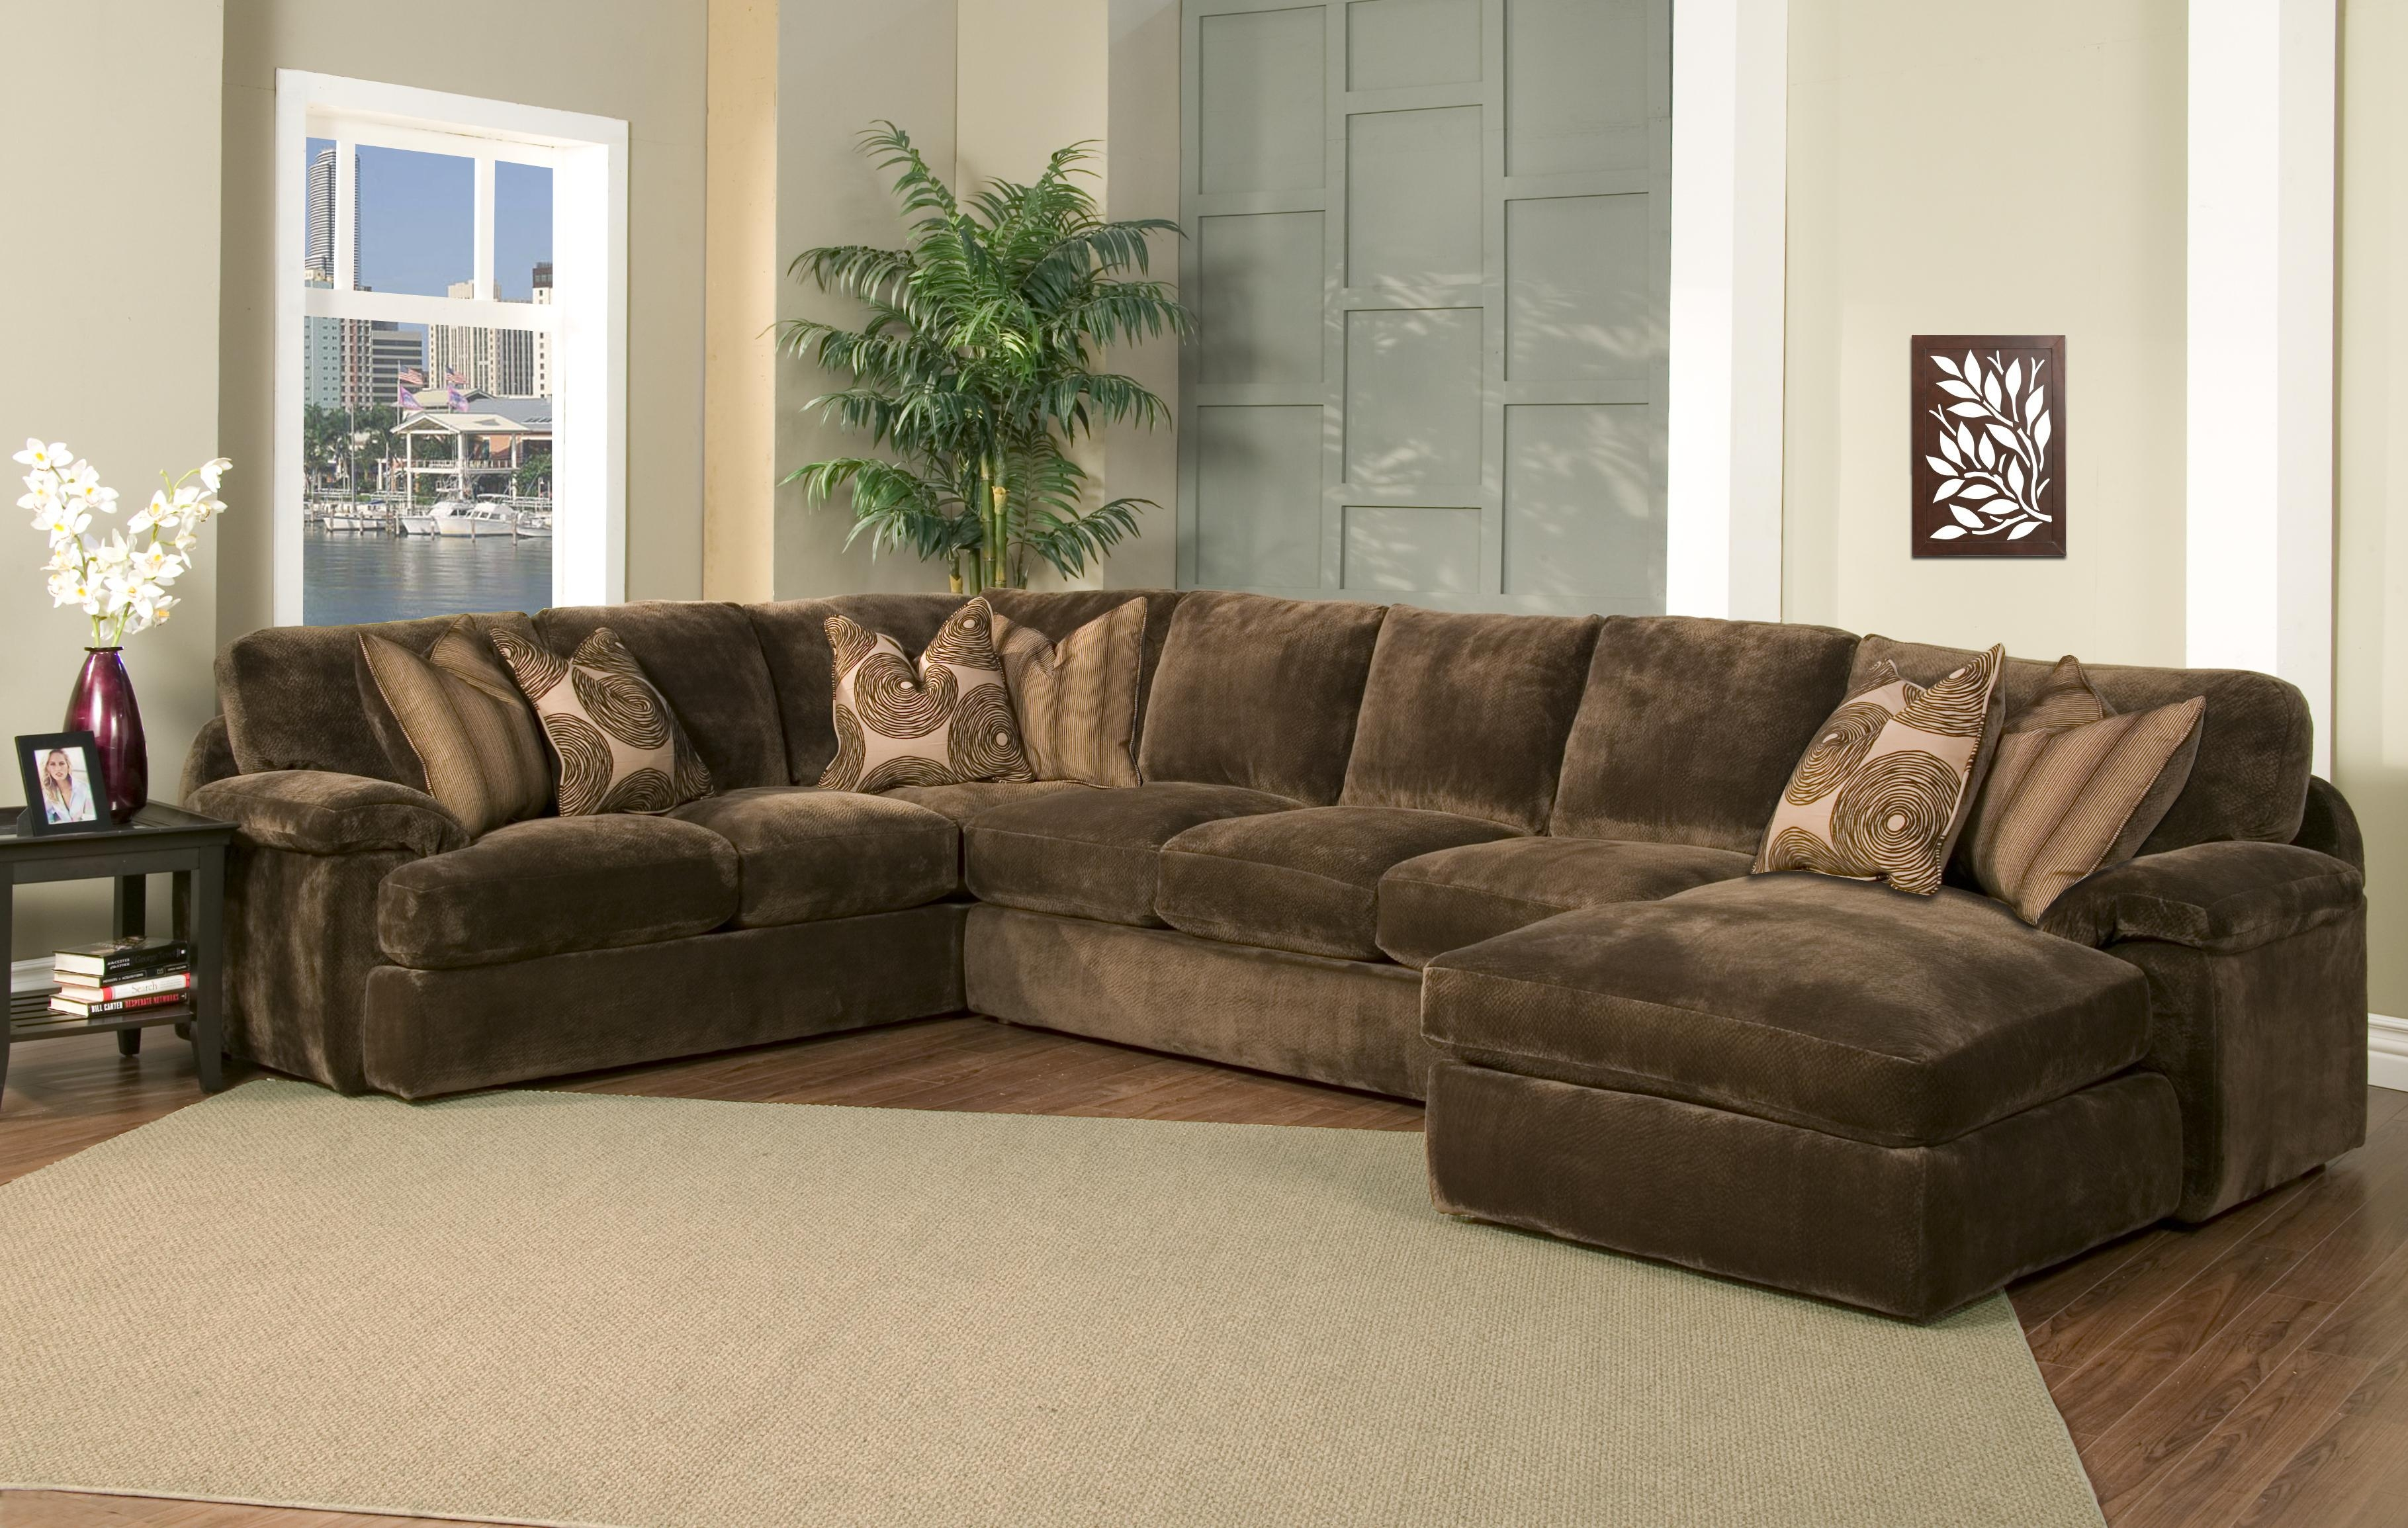 Robert Michaels Sofas And Sectionals With Down Filled Sofas And Sectionals (Image 6 of 15)